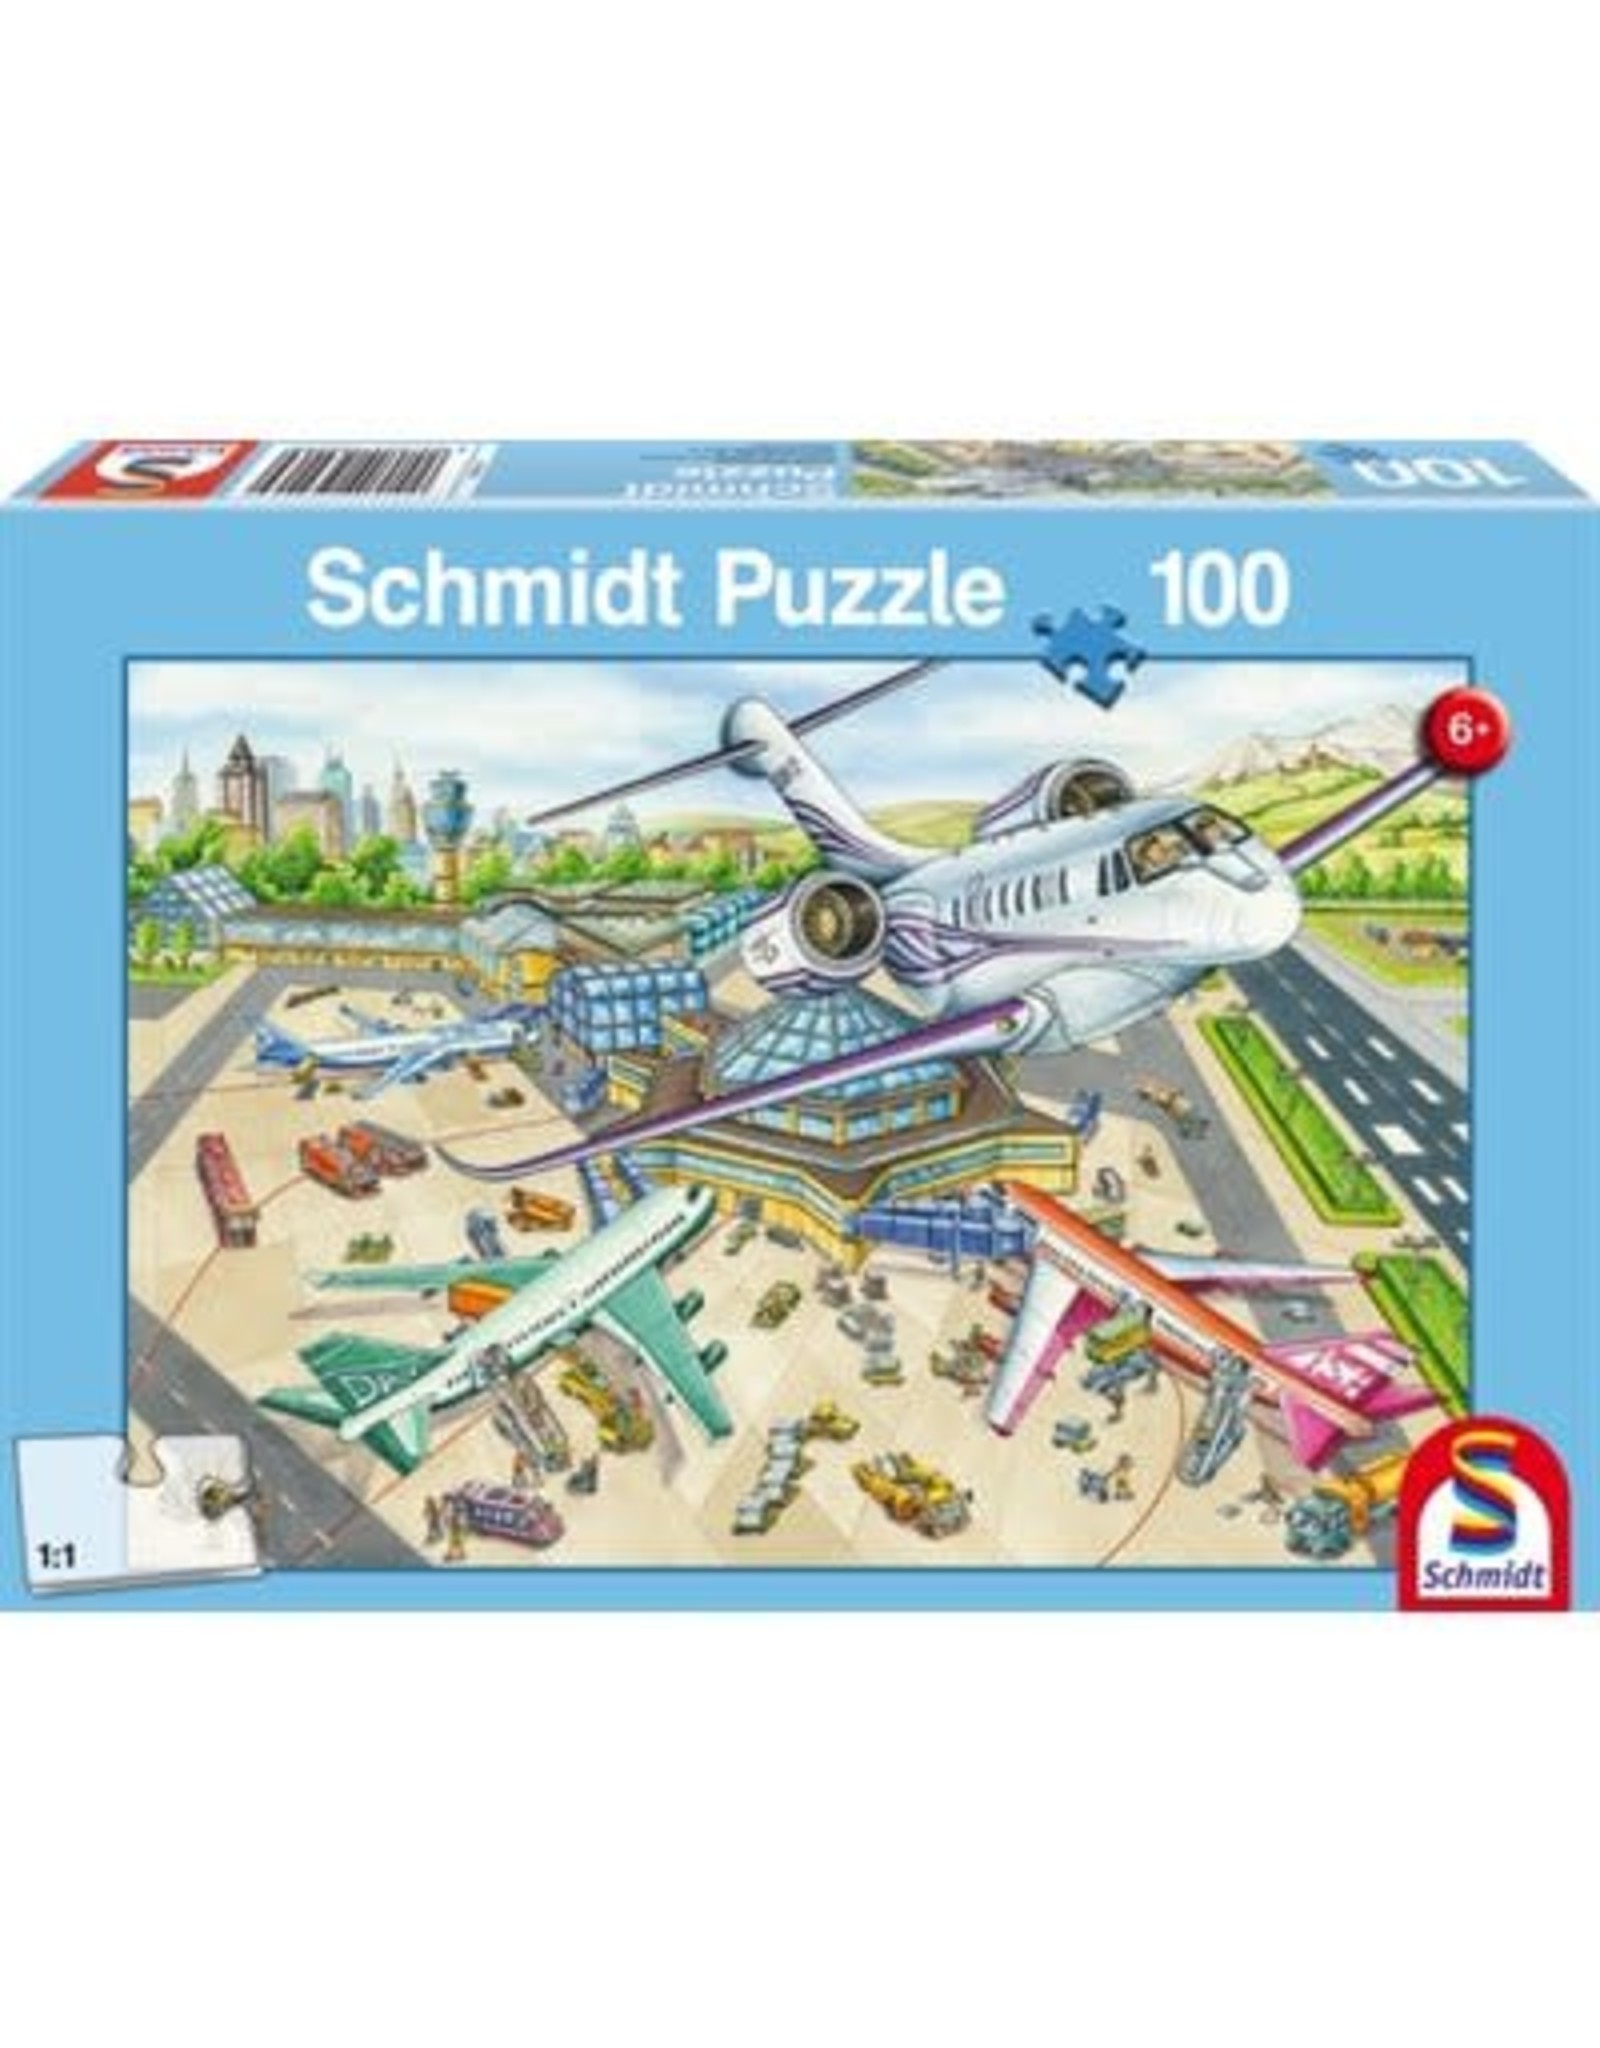 Schmidt Puzzle: Child 100 A Day at the Airport